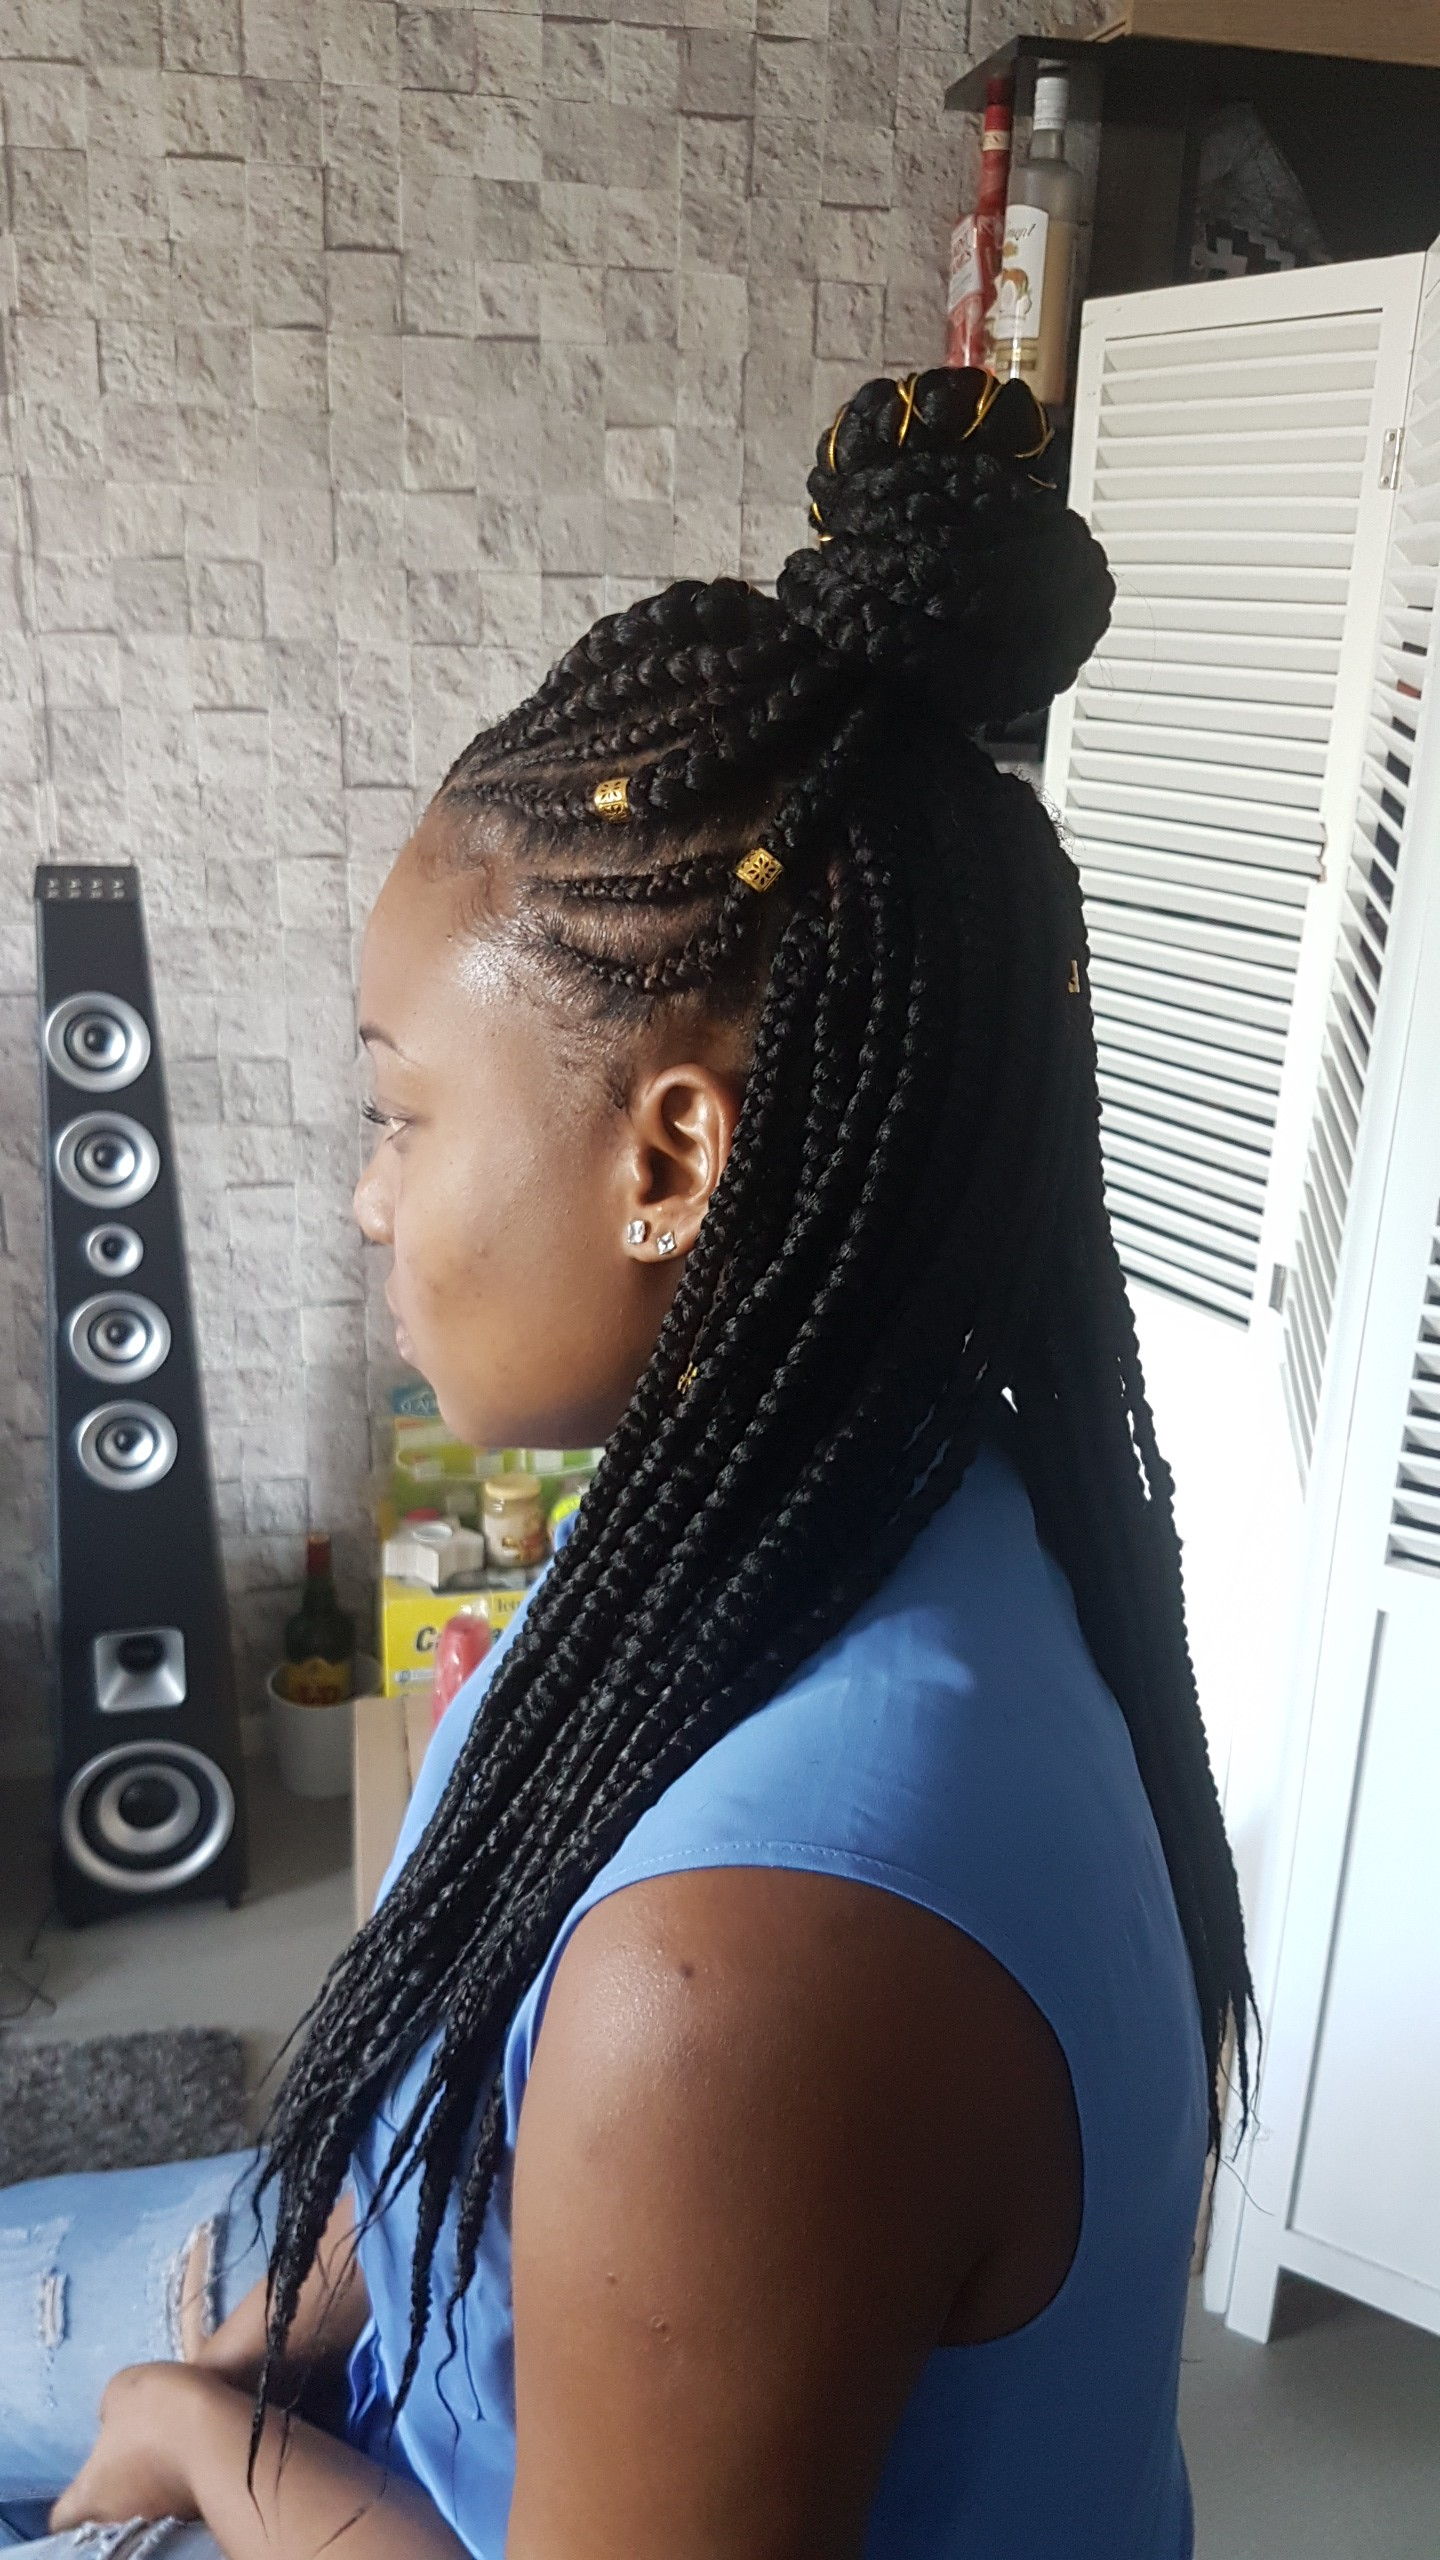 salon de coiffure afro tresse tresses box braids crochet braids vanilles tissages paris 75 77 78 91 92 93 94 95 CNFMOLQC